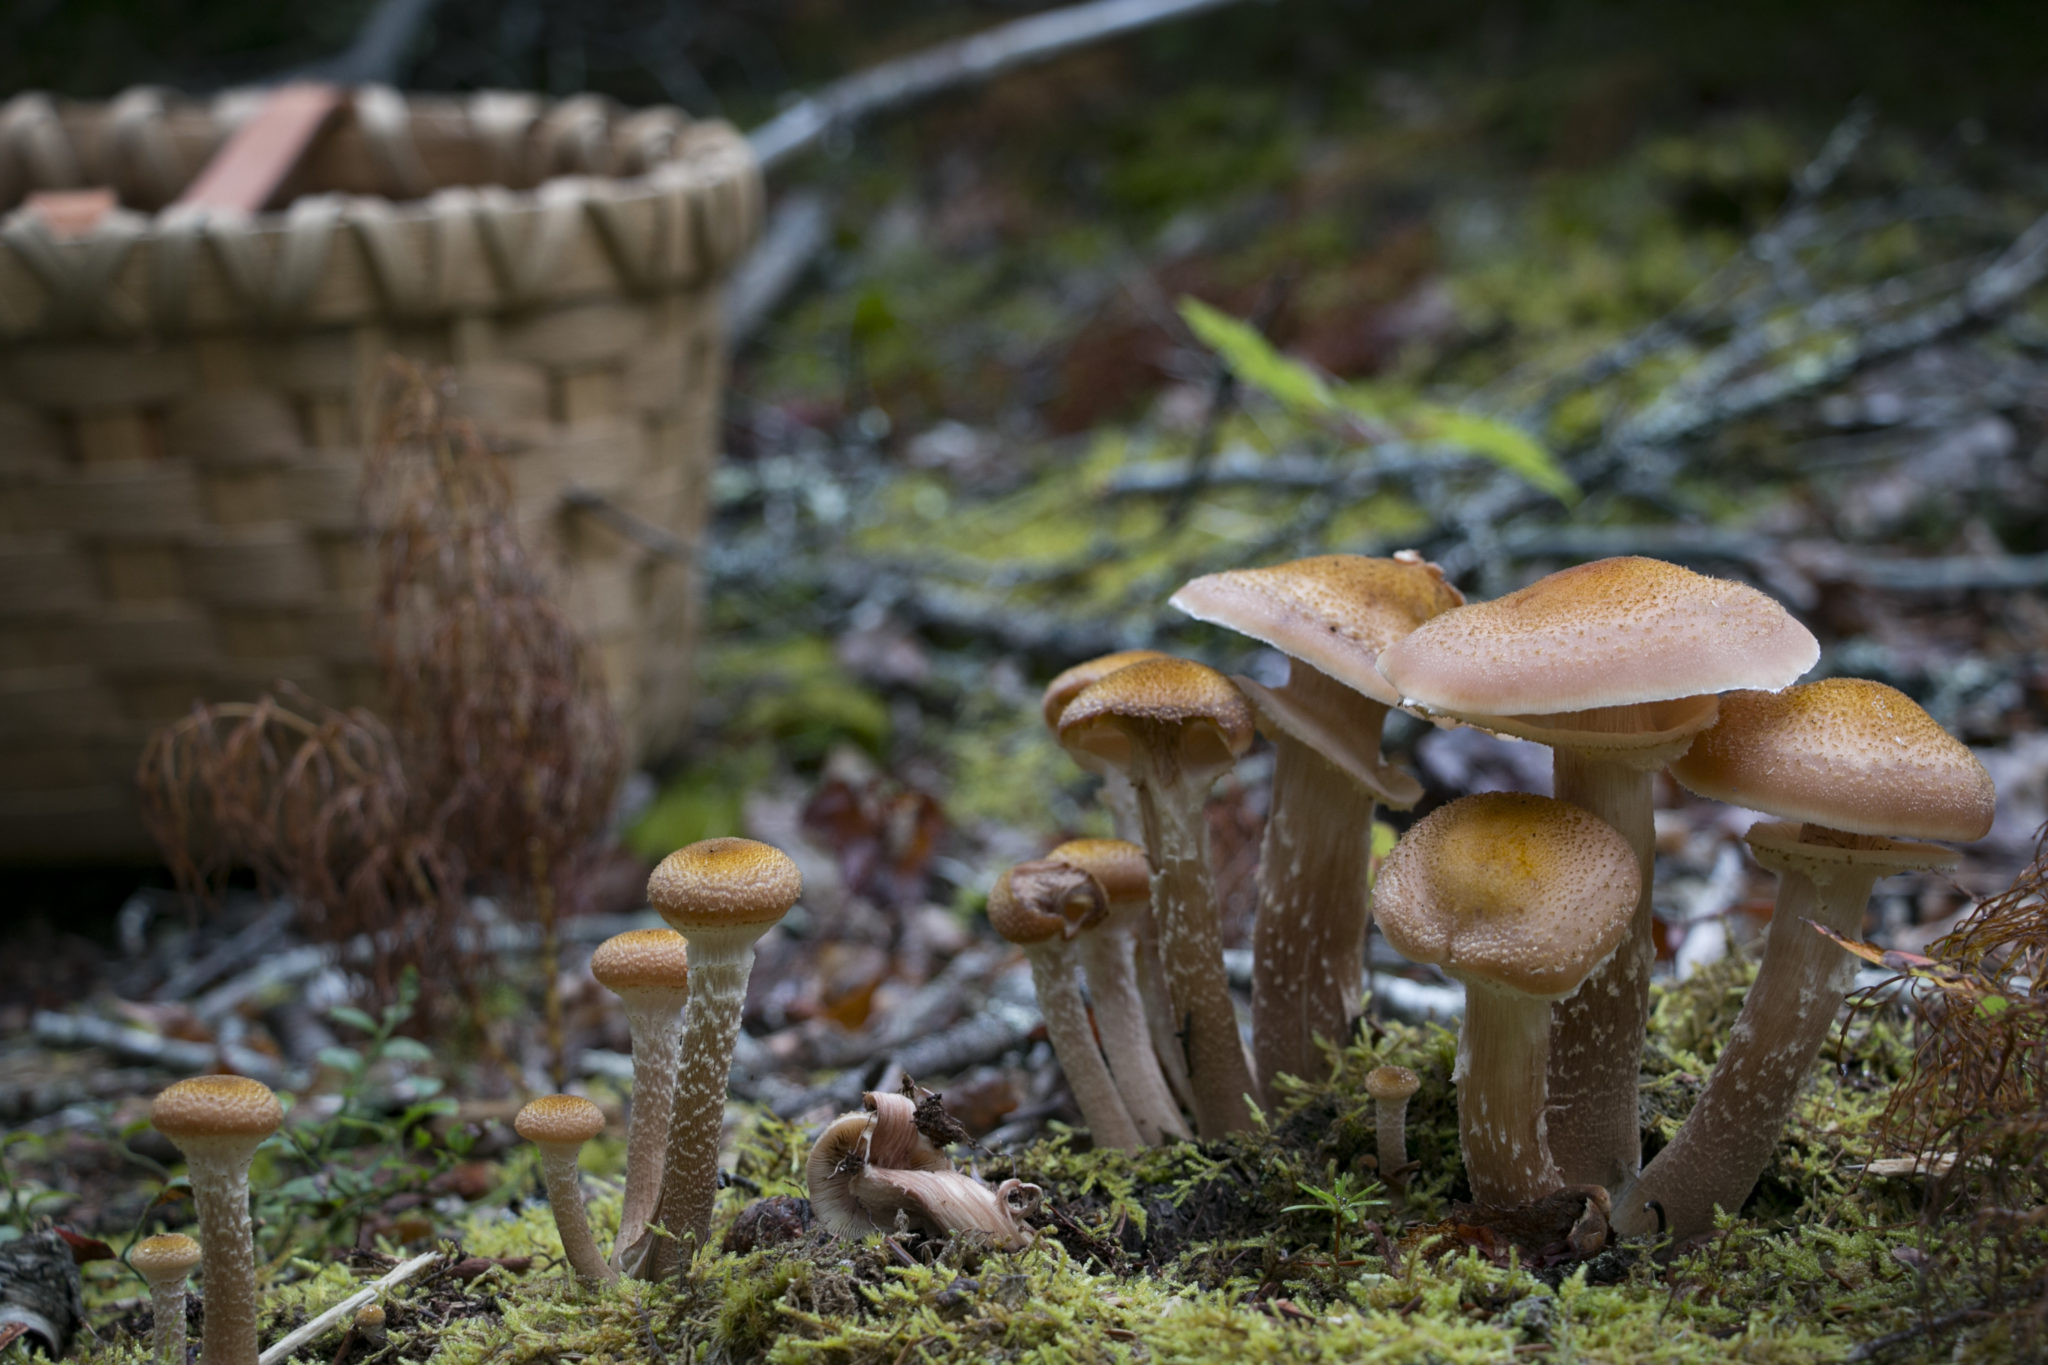 Honey mushrooms were abundant in the woods of Brooklin, Maine, on a trip out mushroom foraging with expert David Porter. |Aislinn Sarnacki